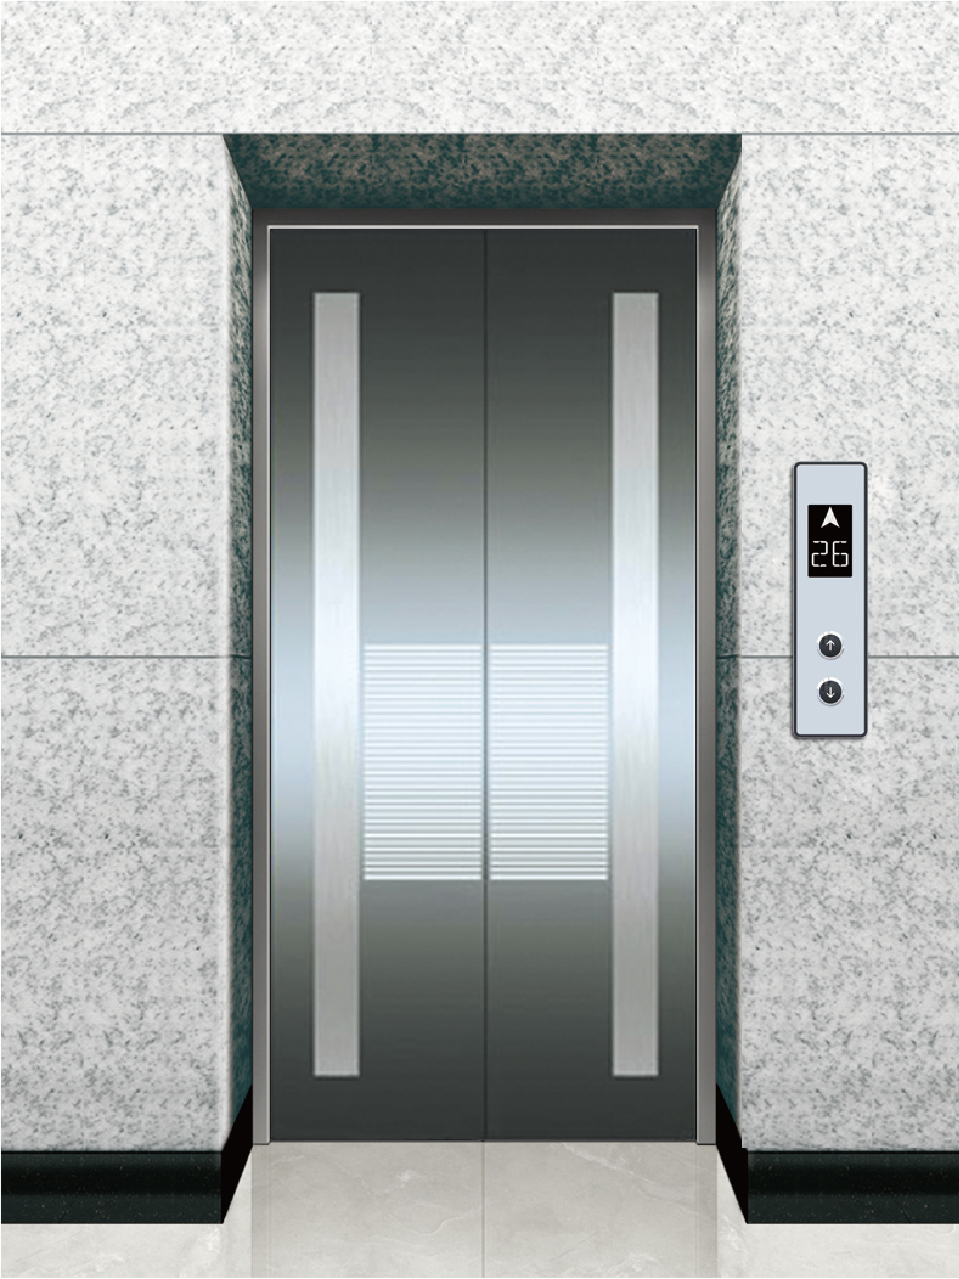 China elevator etched stainless steel landing door for Door manufacturers